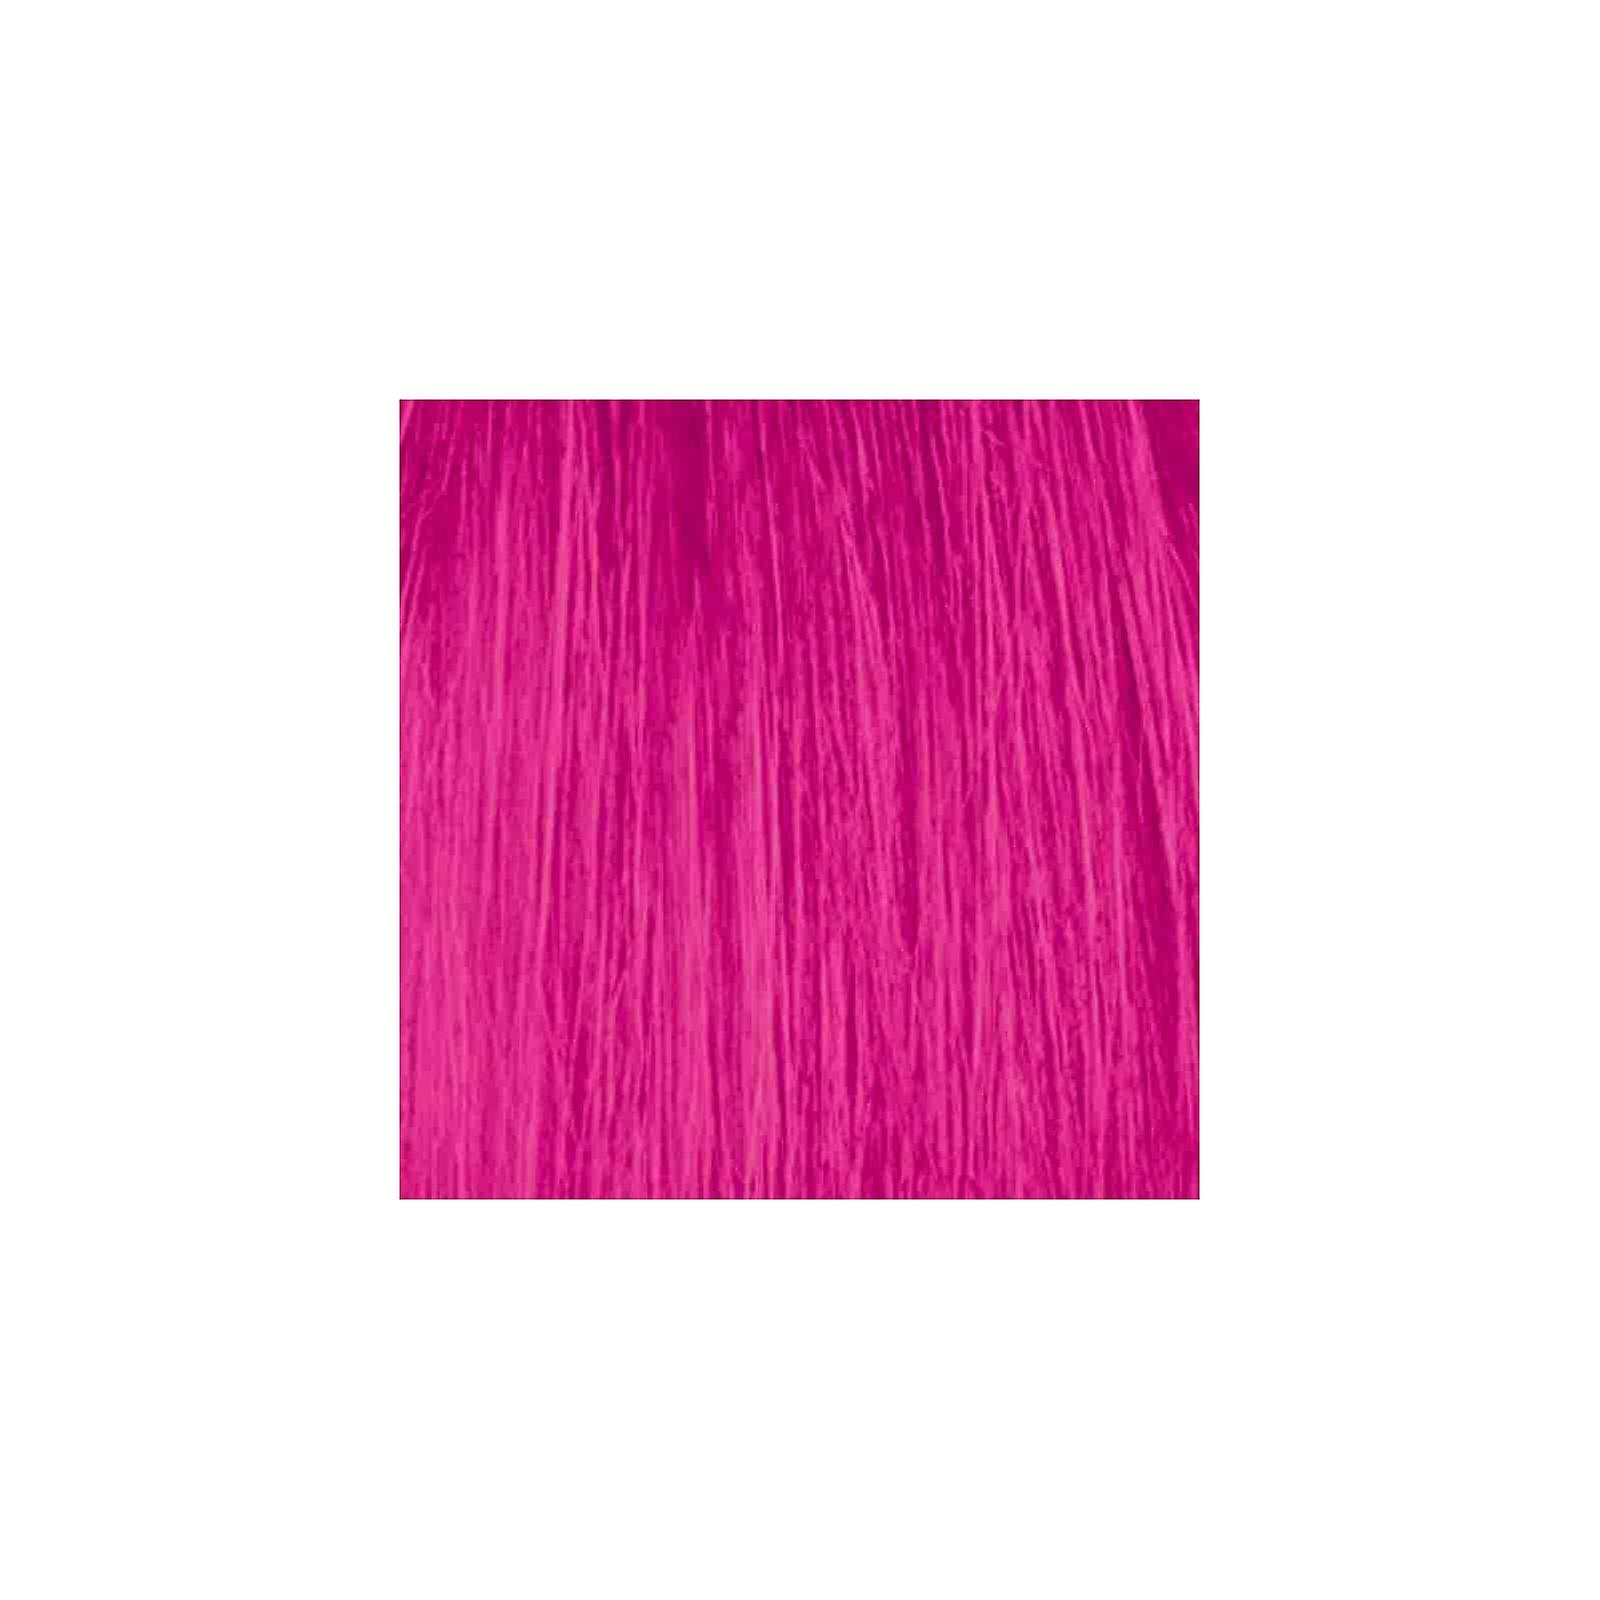 Hair Dye Semi Permanent by Stargazer - UV PINK With Free Gloves